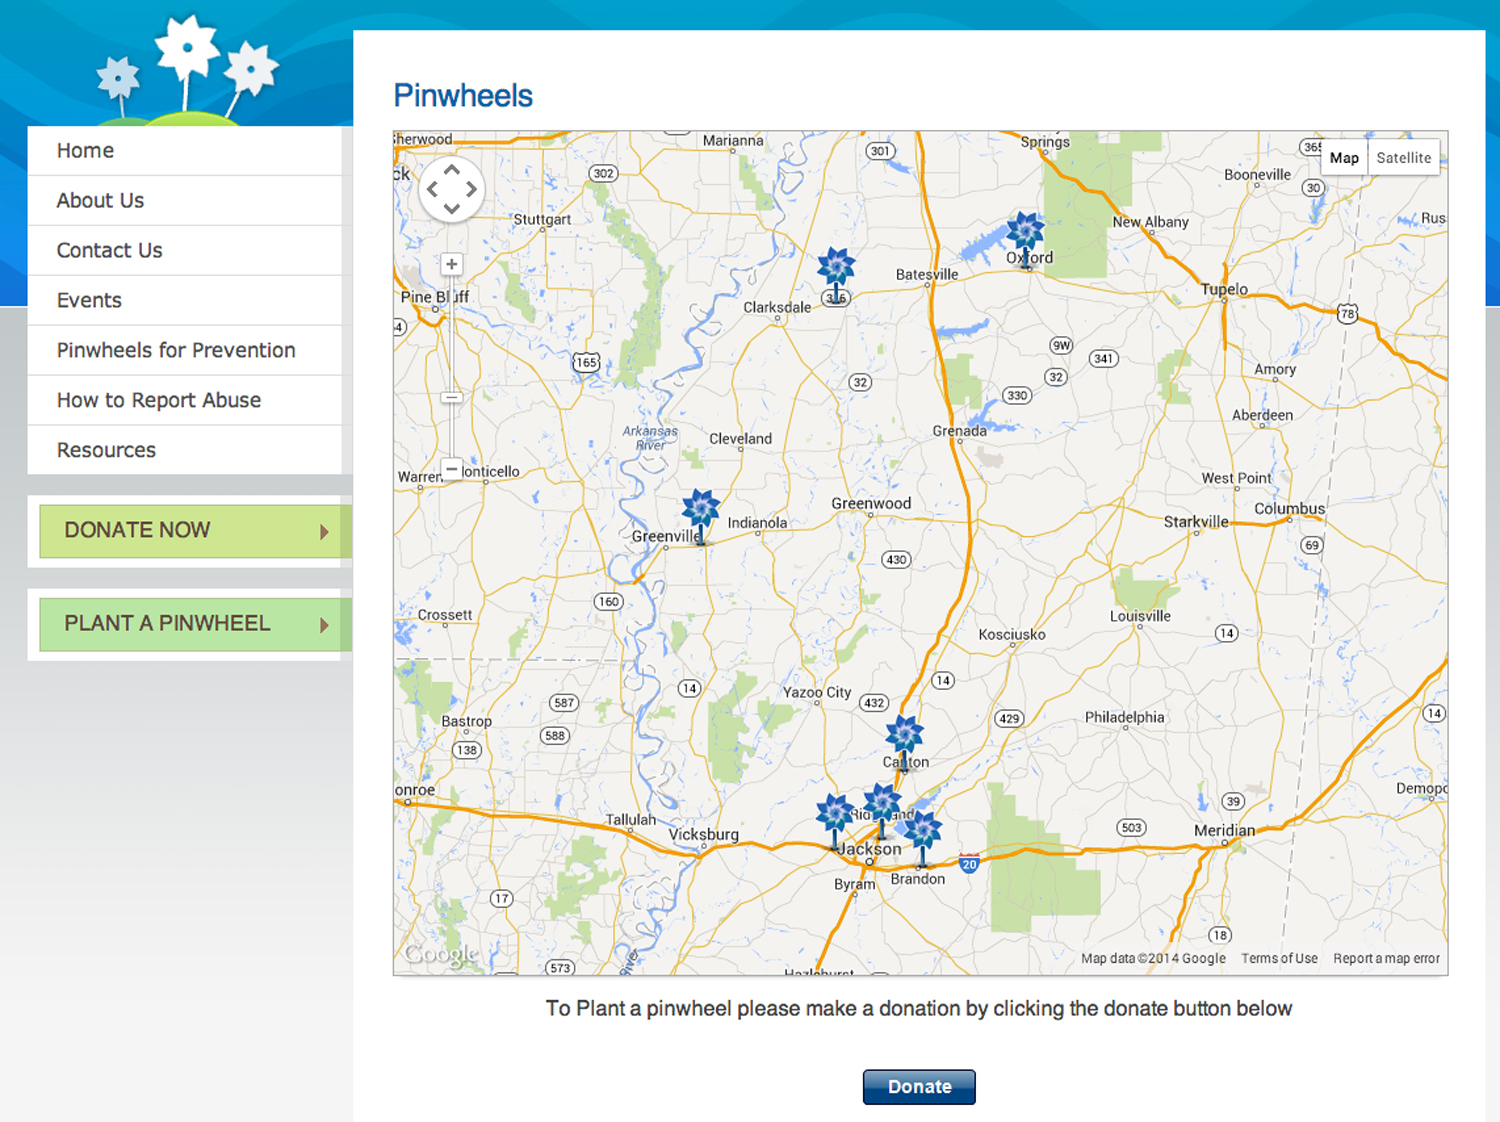 Screenshot of the virtual pinwheel map at www.preventchildabusems.org